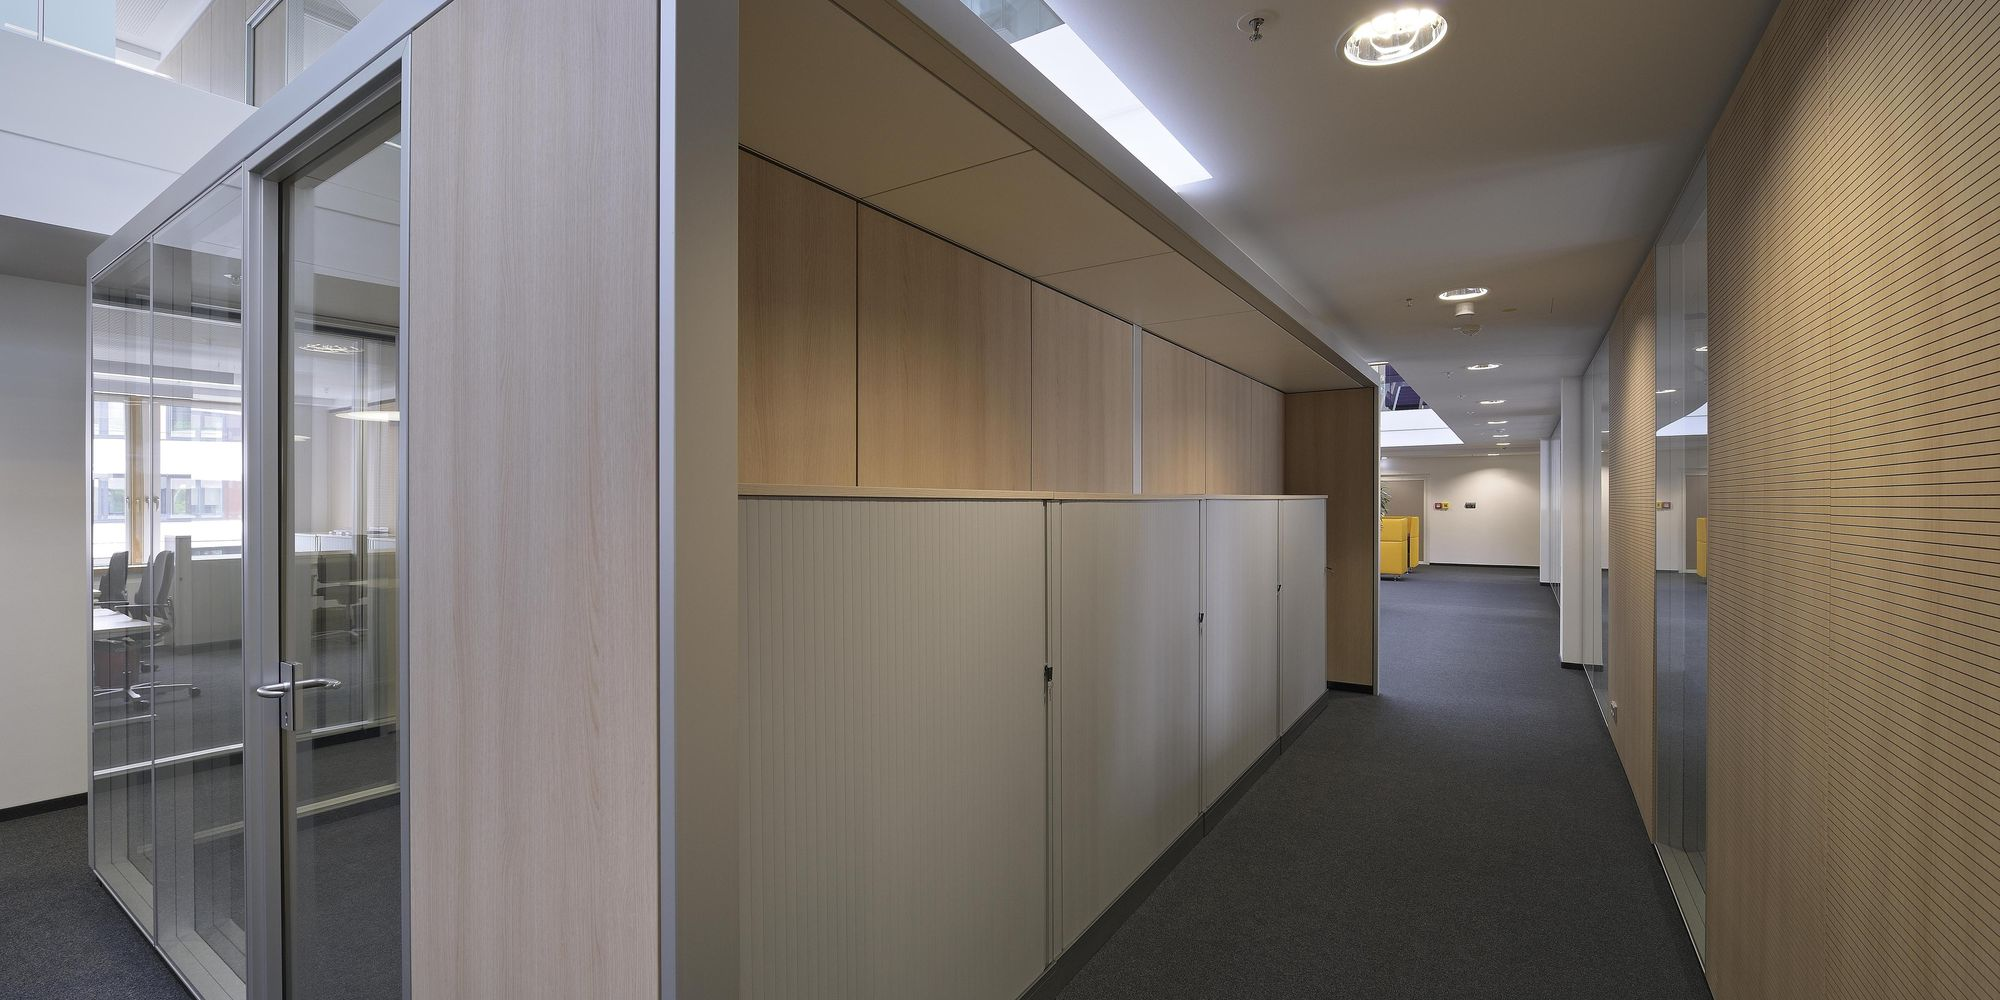 sonic 10 acoustic panels combined with T35 glass partition wall